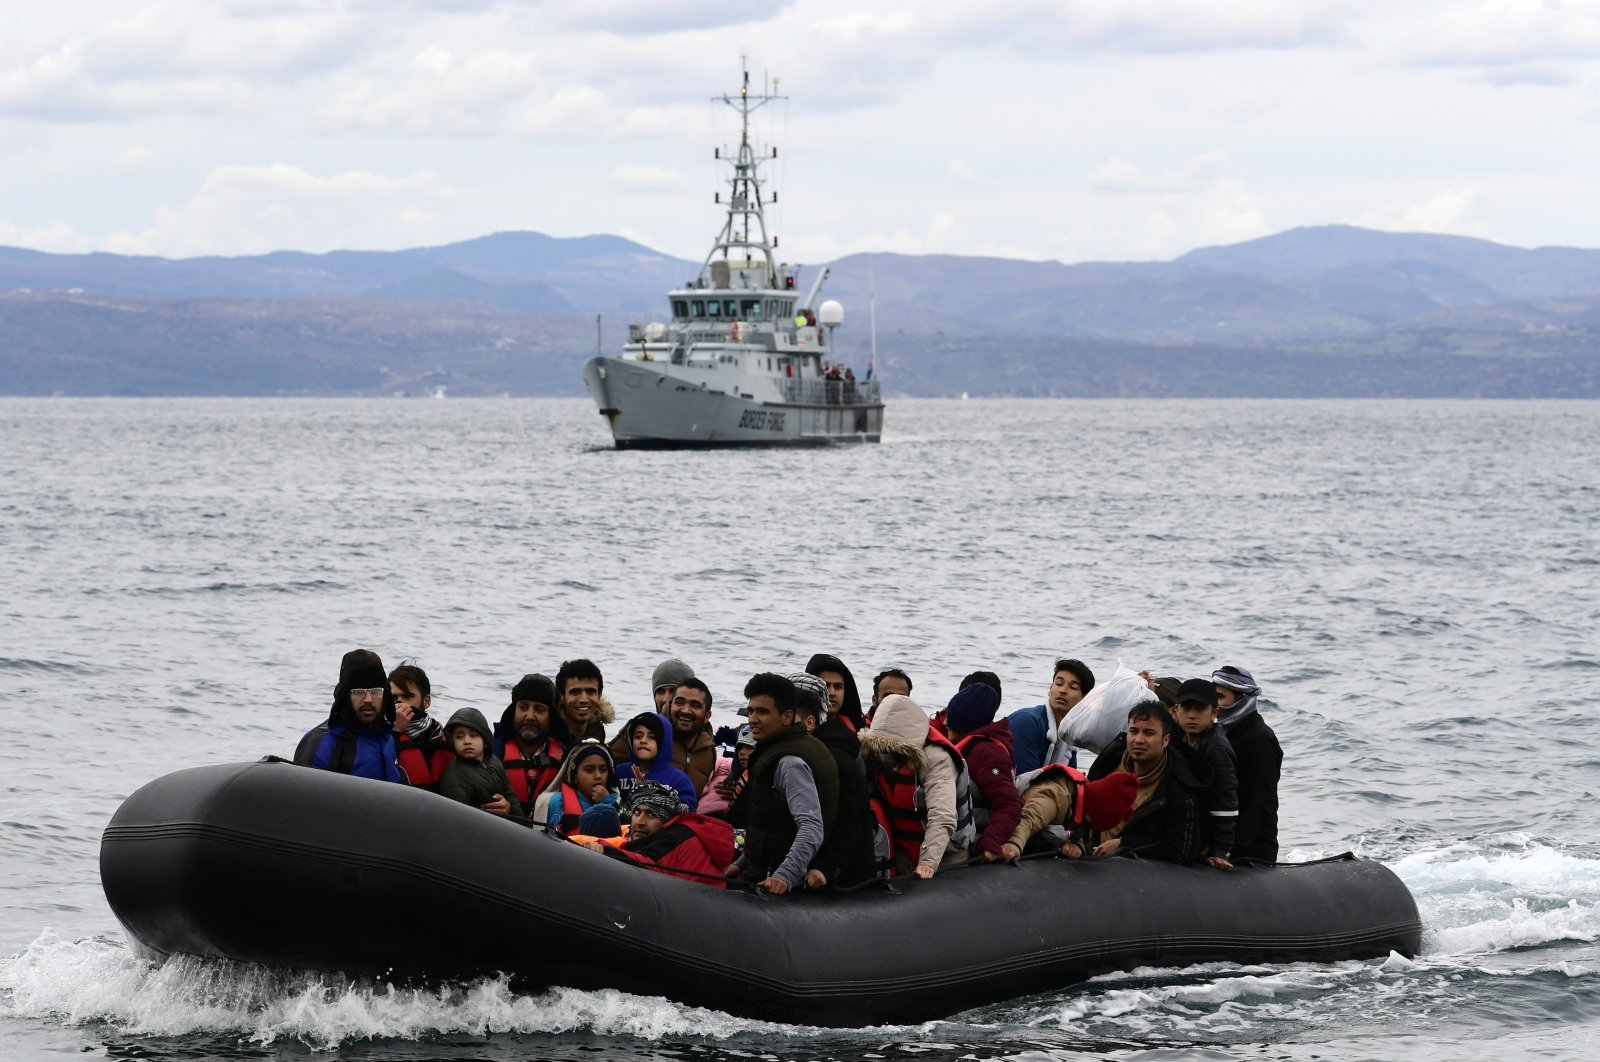 After crossing the Aegean Sea from Turkey, migrants arrive in a dinghy accompanied by a Frontex vessel at the village of Skala Sikaminias, on the island of Lesbos, Greece, Feb. 28, 2020. (AP File Photo)